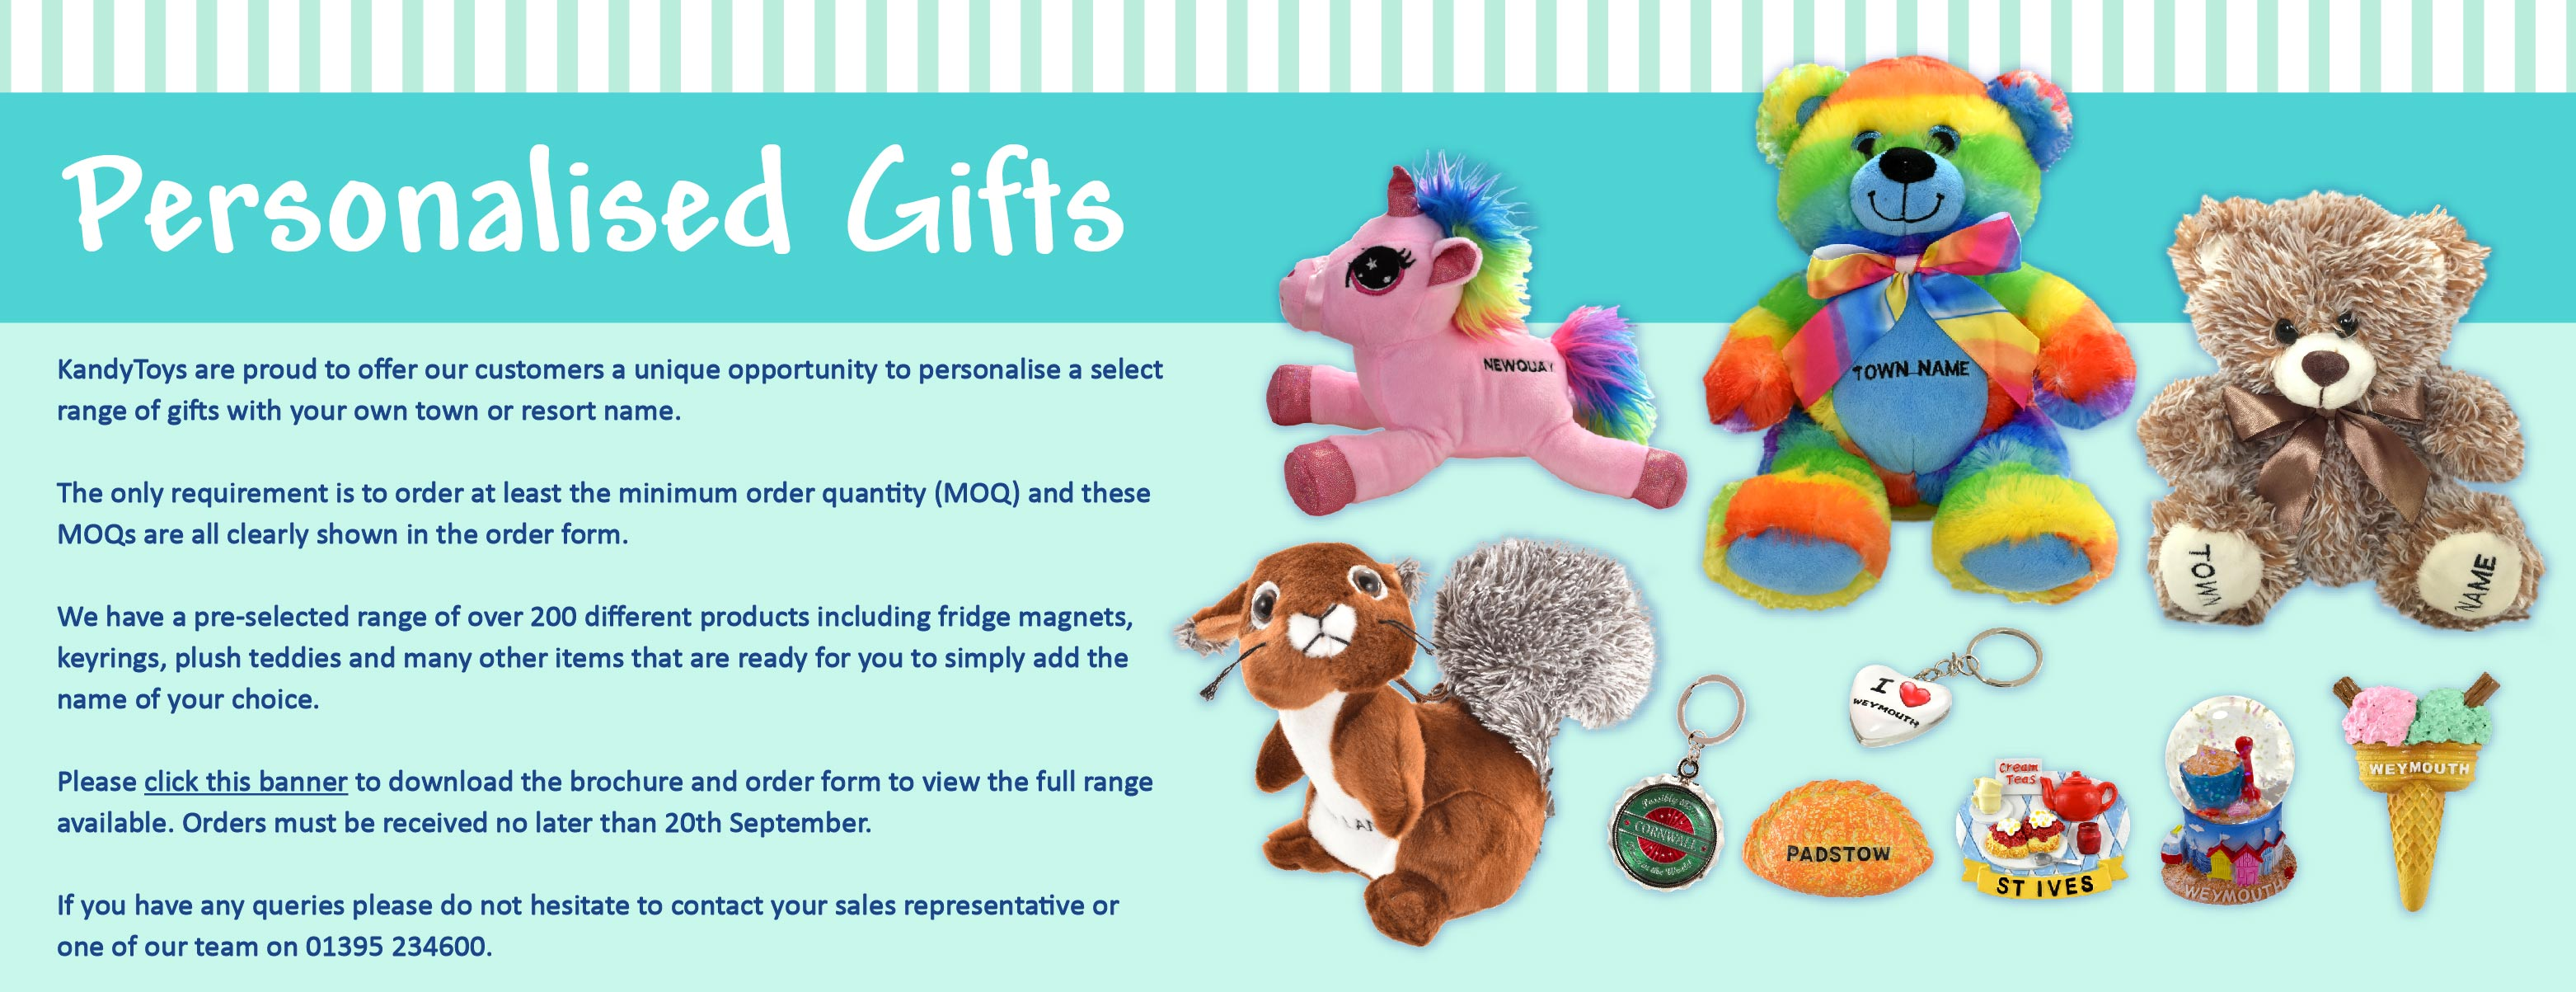 KandyToys | UK's leading importers of Toys, Beach Goods, Pools and Gifts